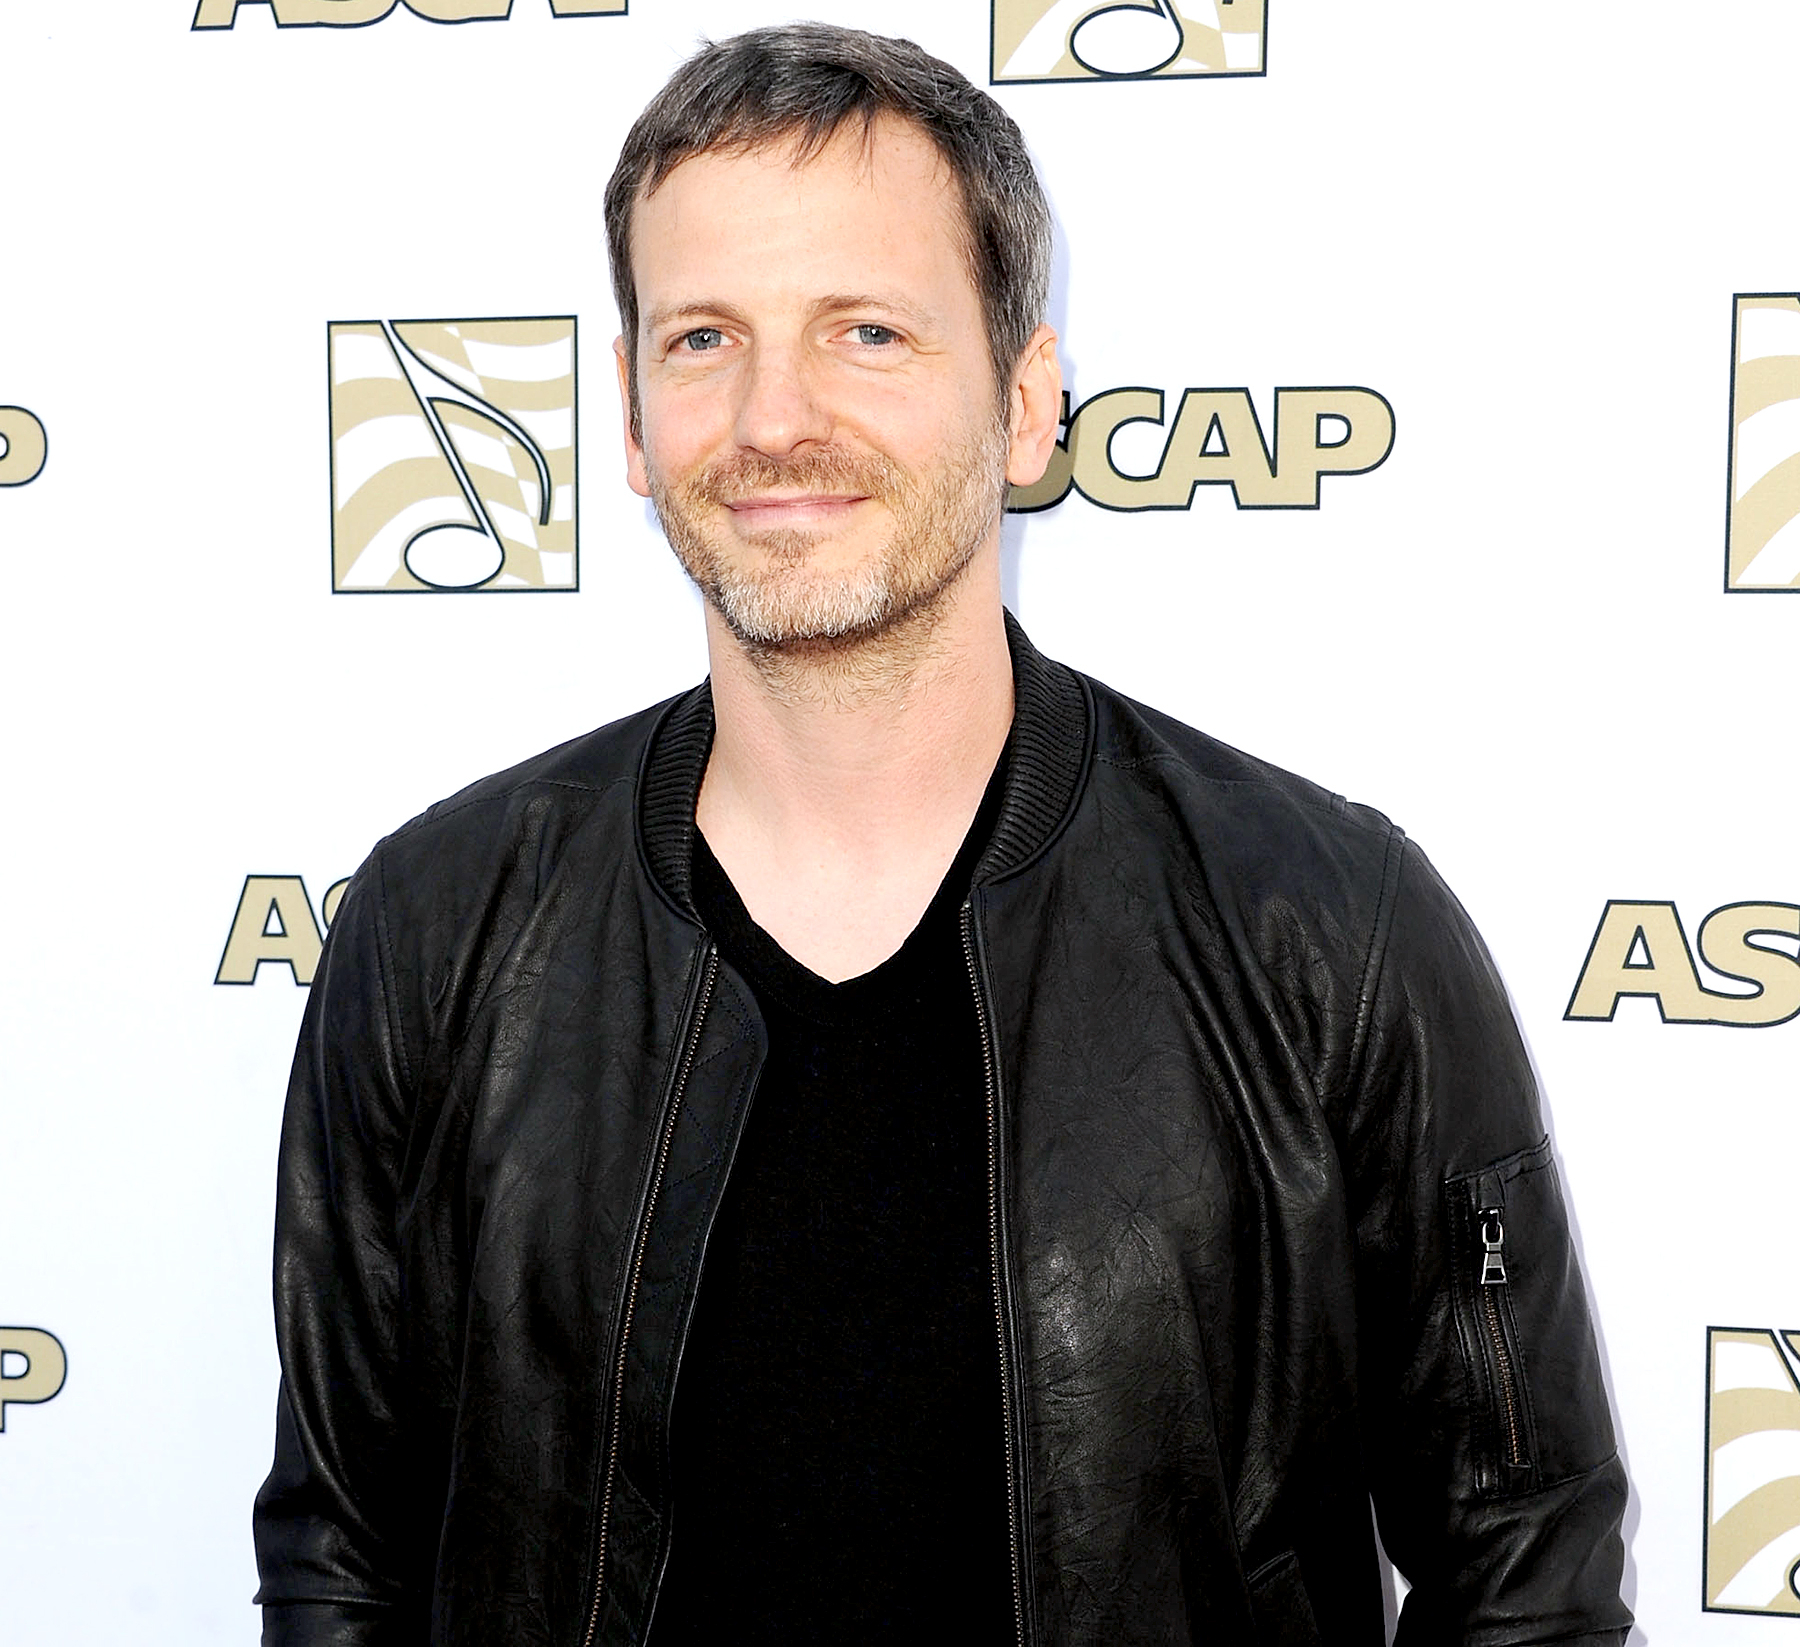 Dr. Luke arrives at the 30th Annual ASCAP Pop Music Awards at Loews Hollywood Hotel on April 17, 2013 in Hollywood, California.